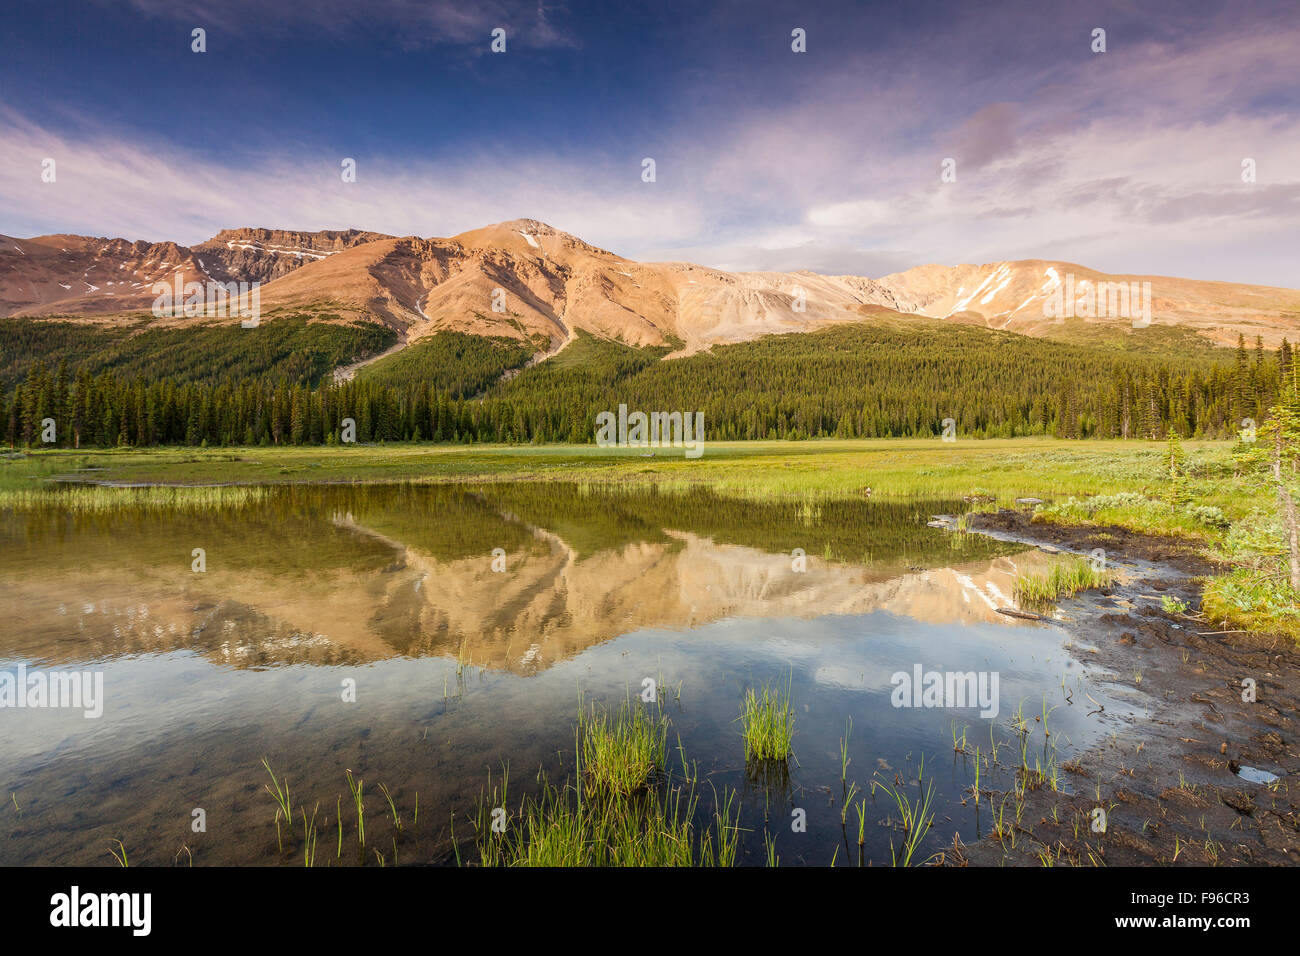 Observation Peak reflected in wetlands in Banff National Park, Alberta, Canada - Stock Image